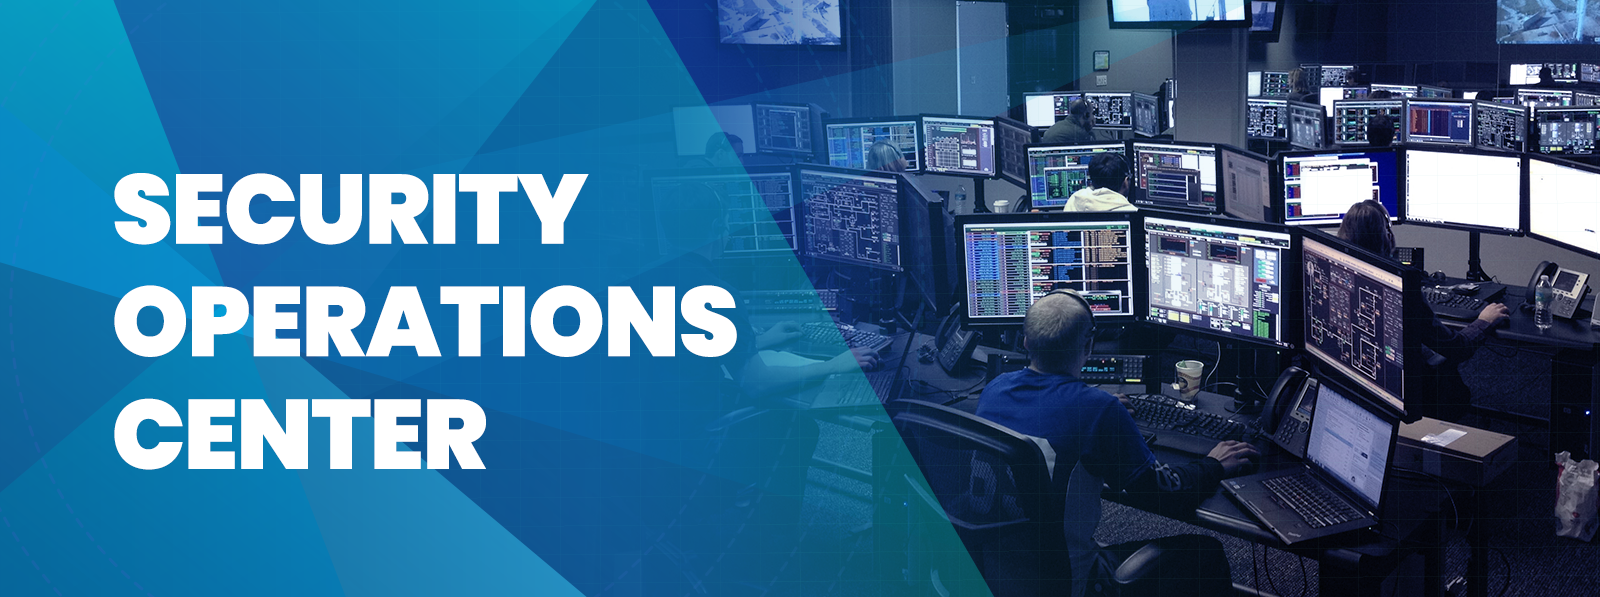 Why Security Operations Center is Important for Your Business